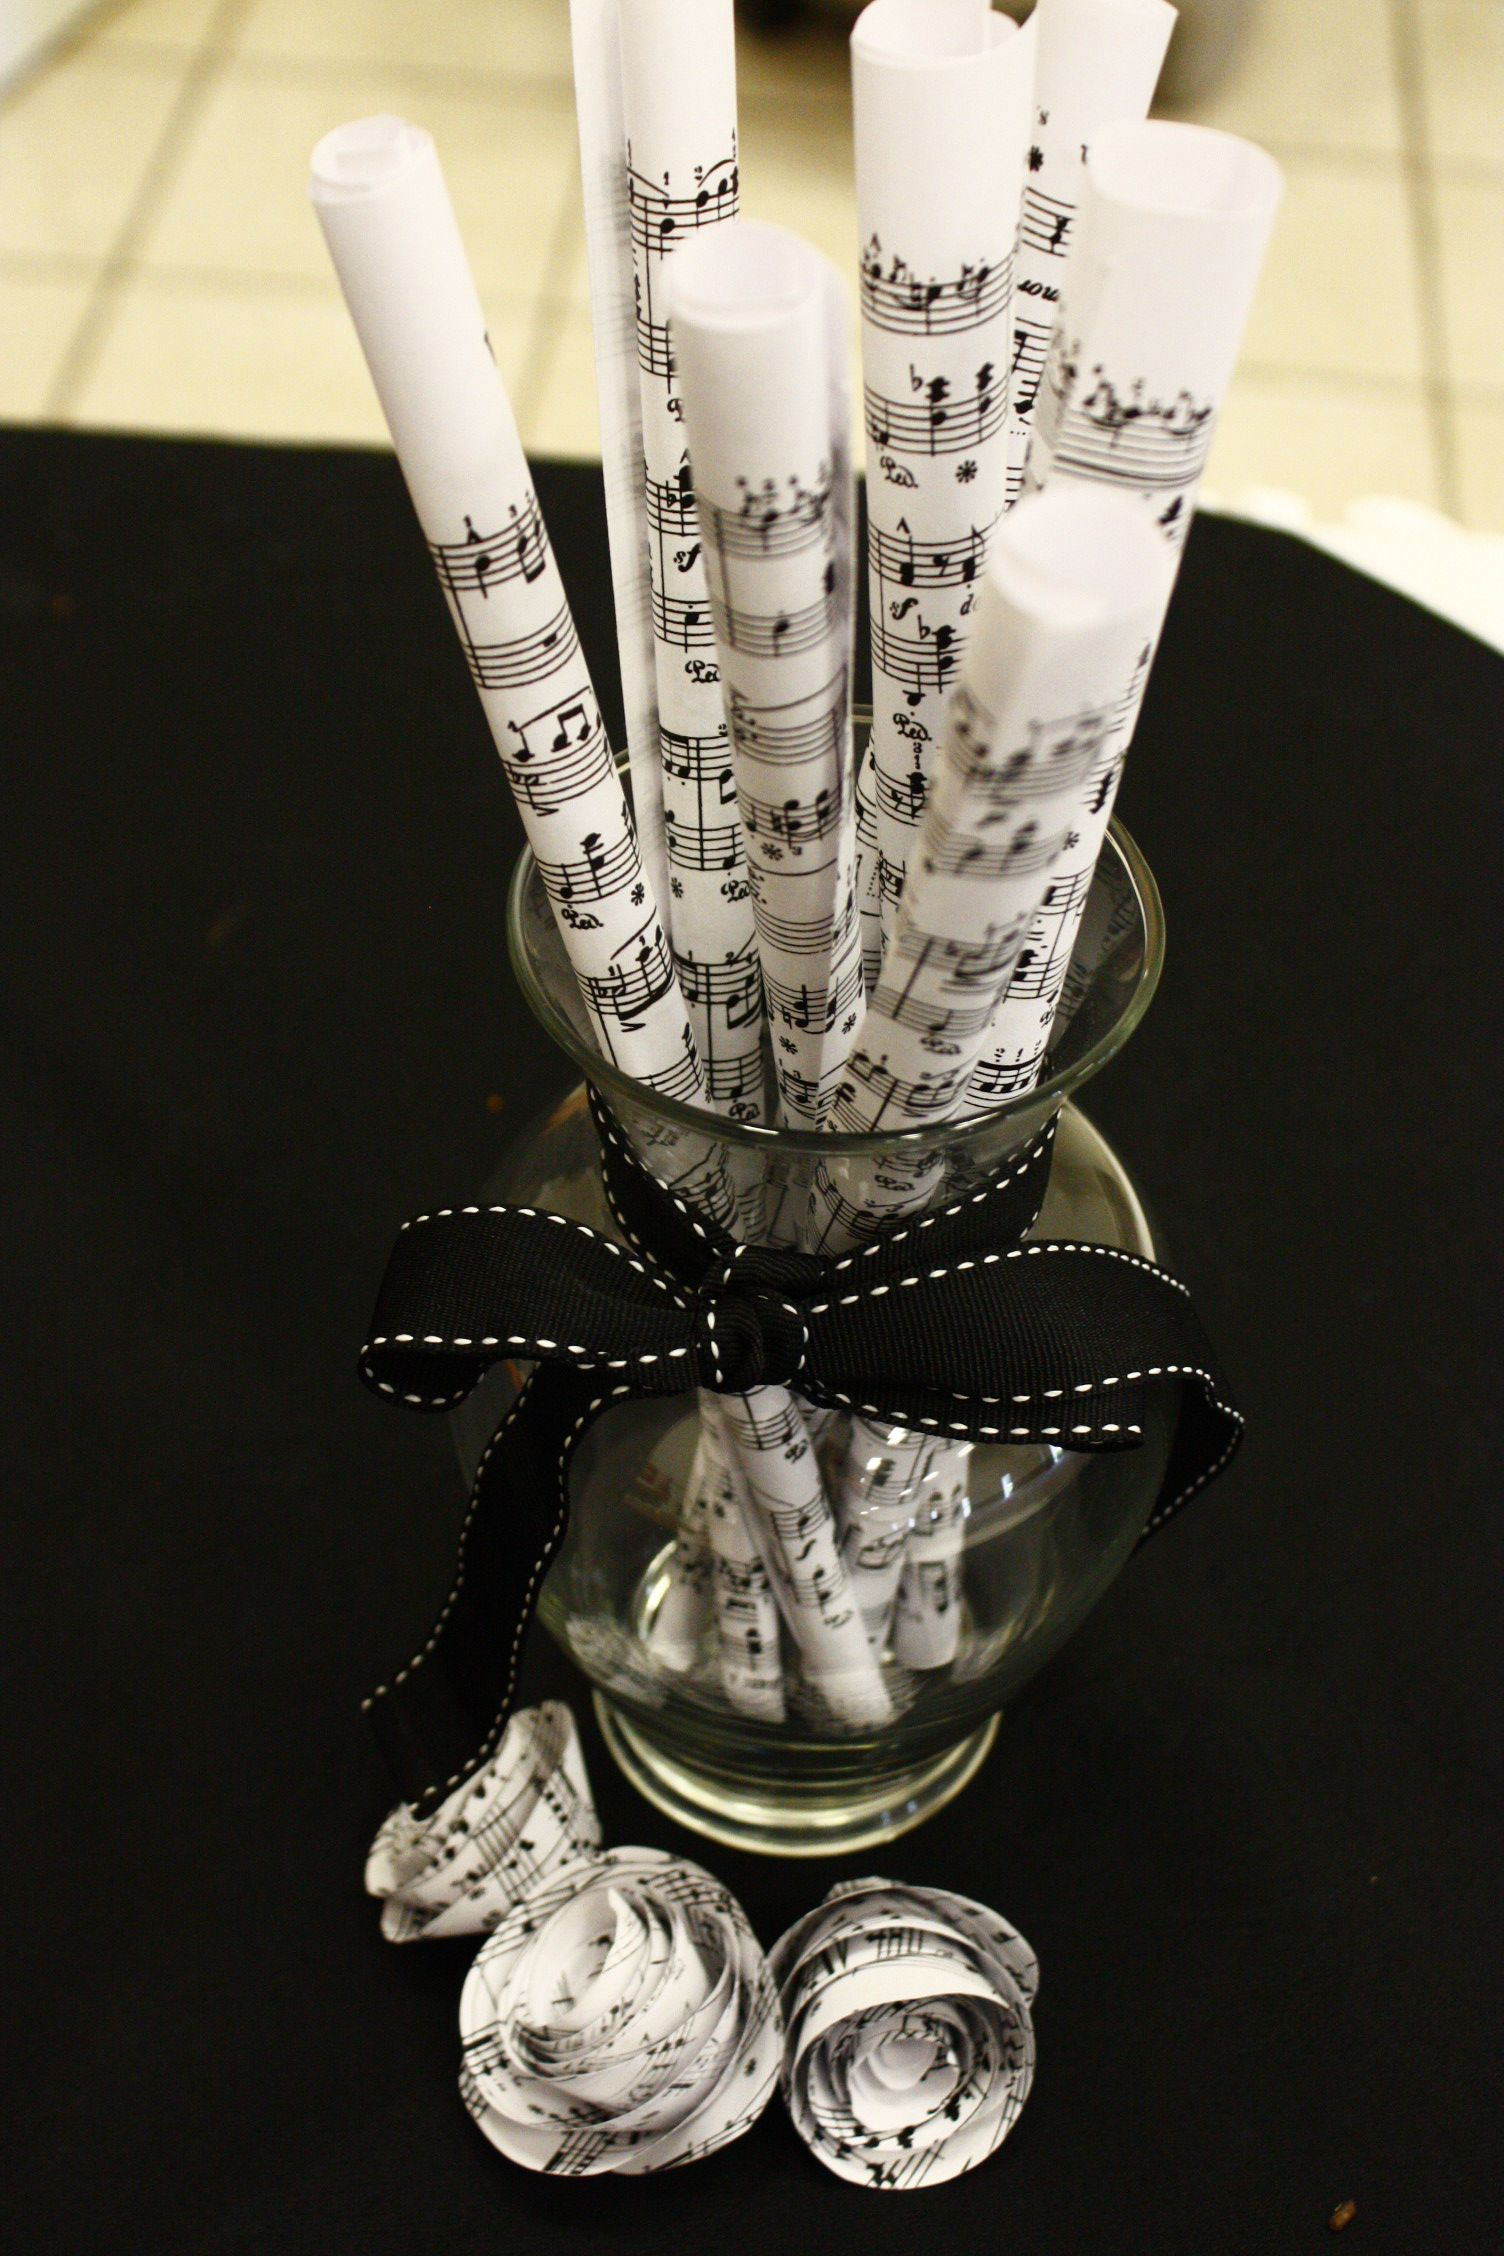 Recital Decorations Rolled Up Sheet Music In A Vase With